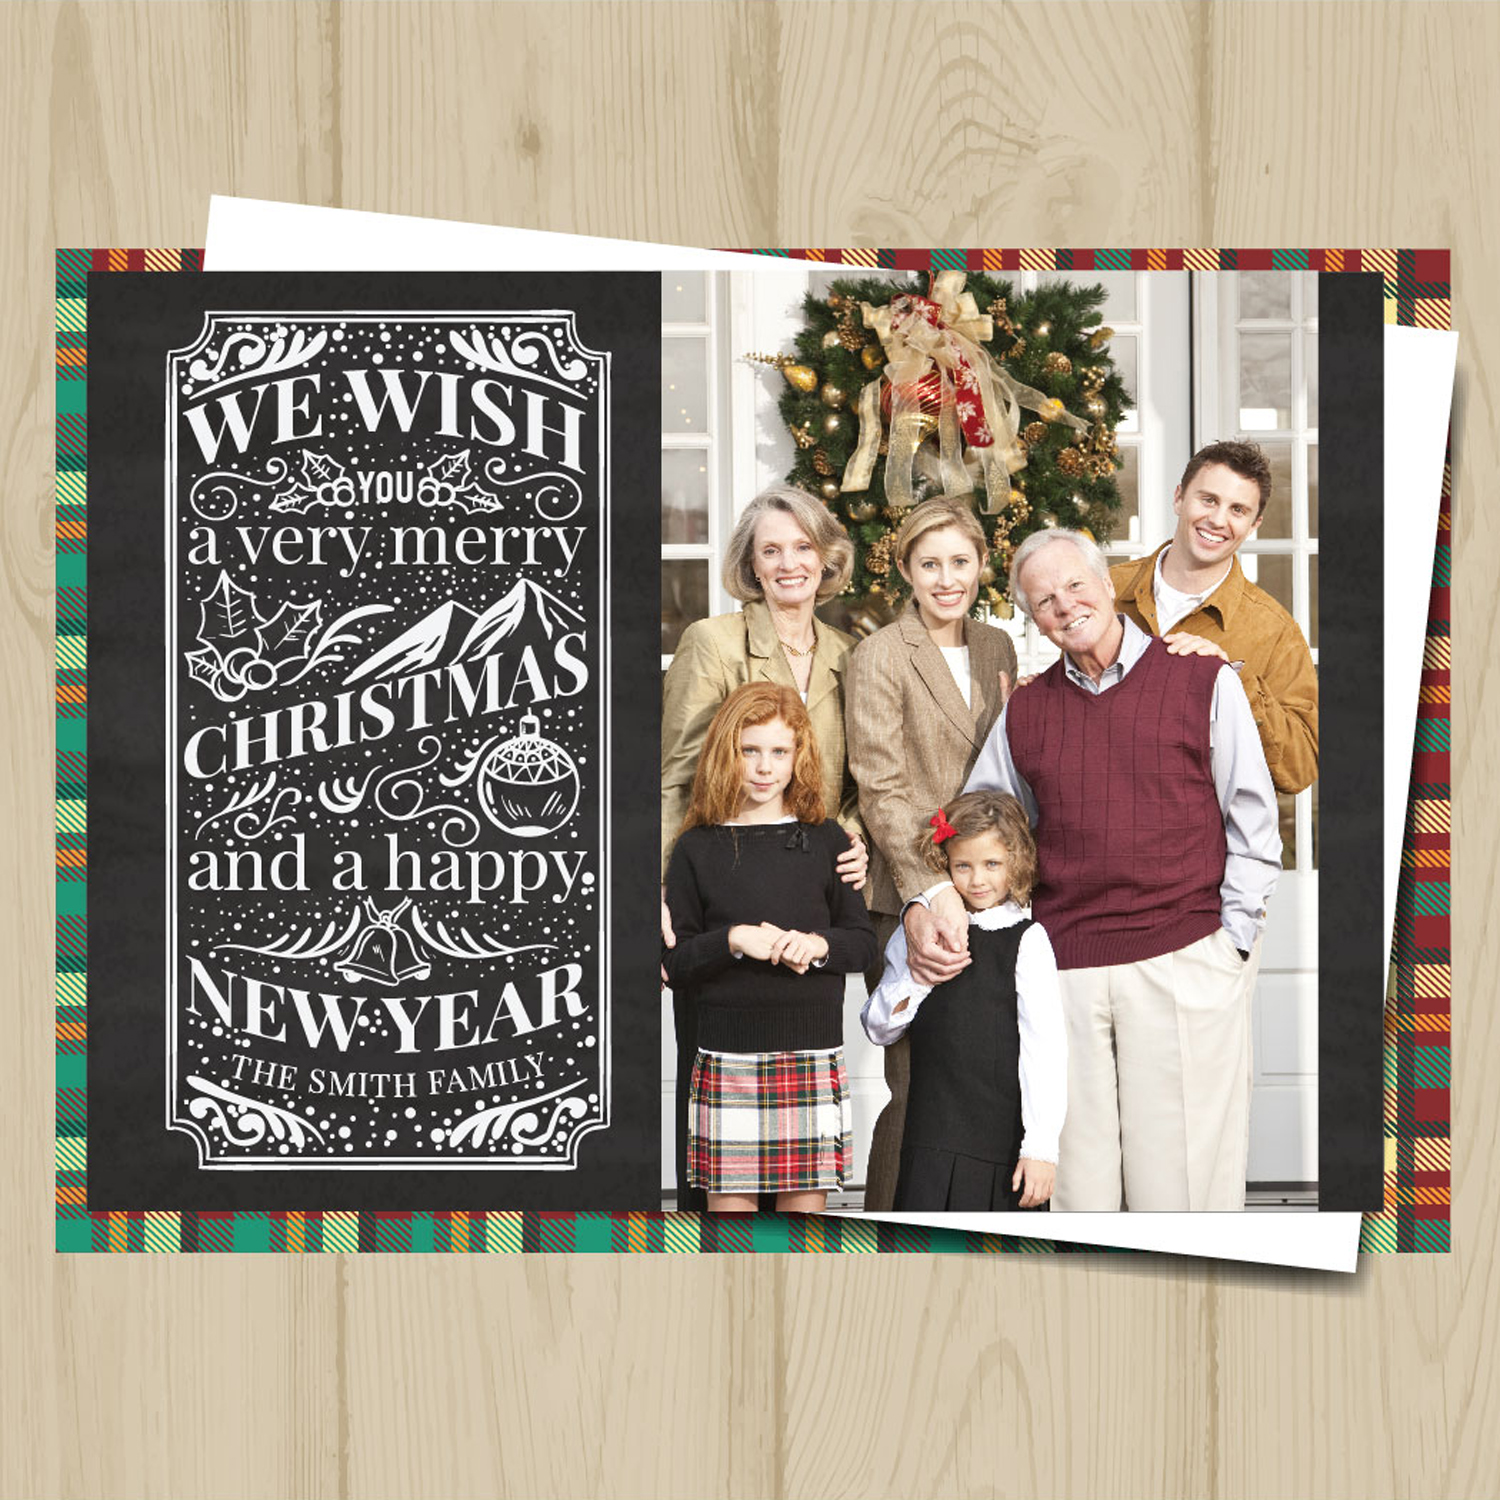 personalized christmas cards – PRINTING by Penny Lane